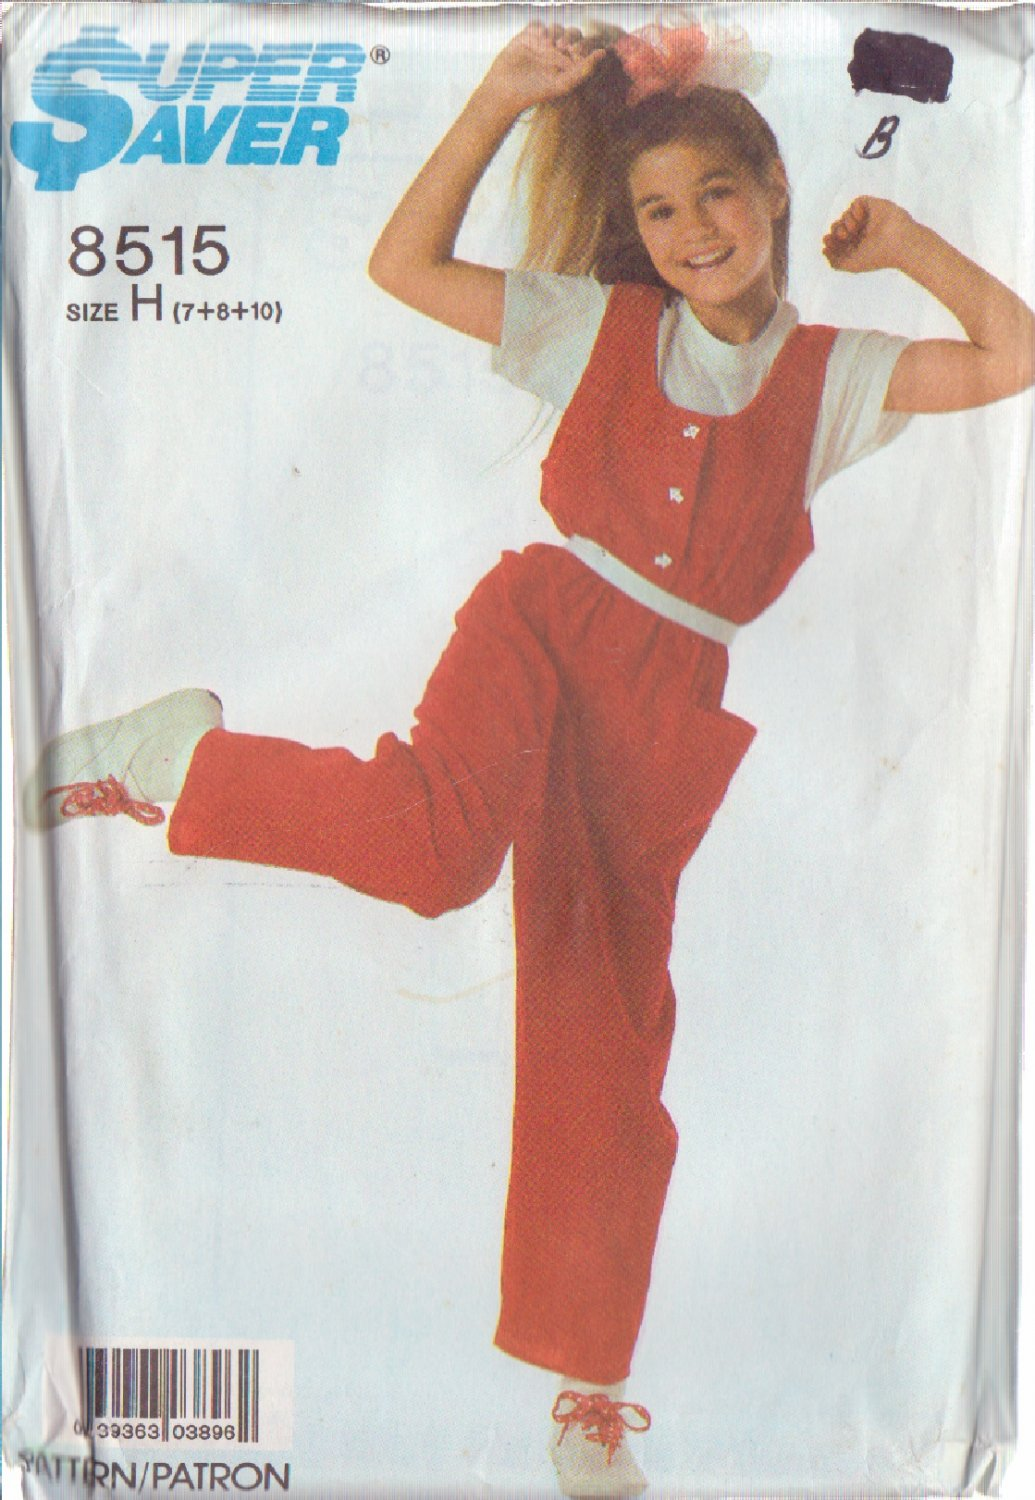 SIMPLICITY VINTAGE PATTERN 8515 CHILD'S EASY TO SEW JUMPSUIT SIZES 7+8+10 UNCUT